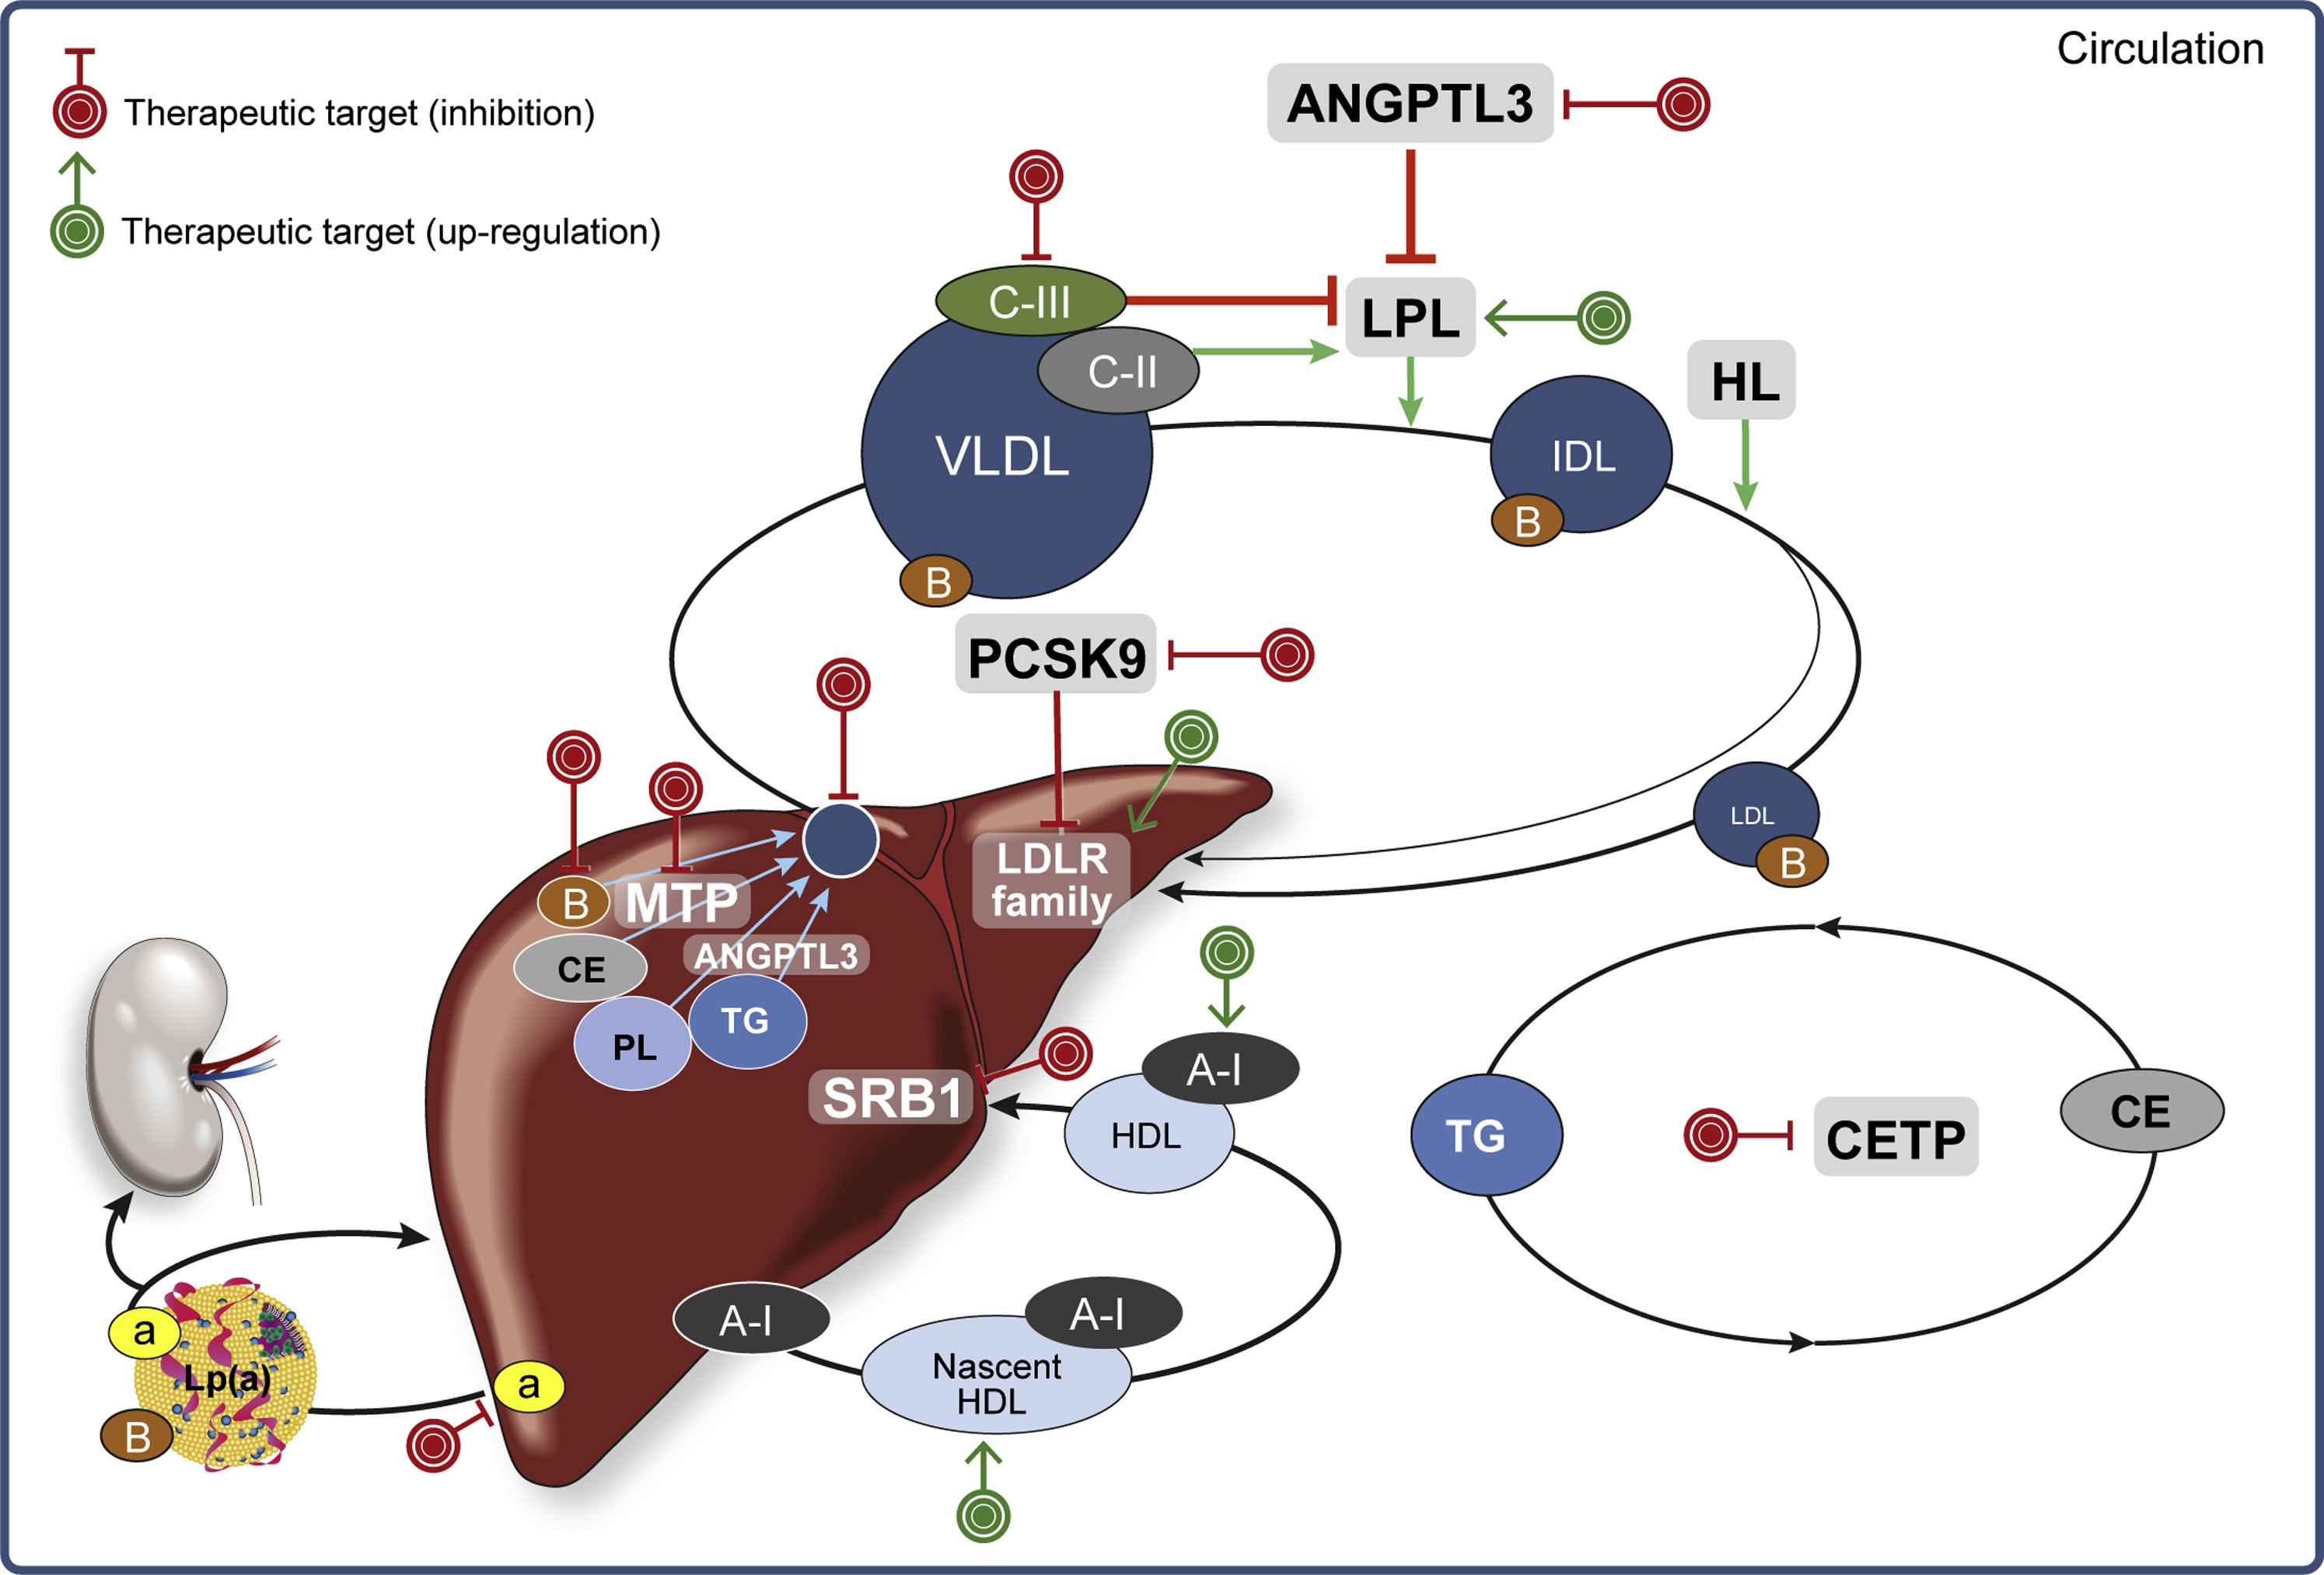 lipid metabolism and emerging targets for lipid